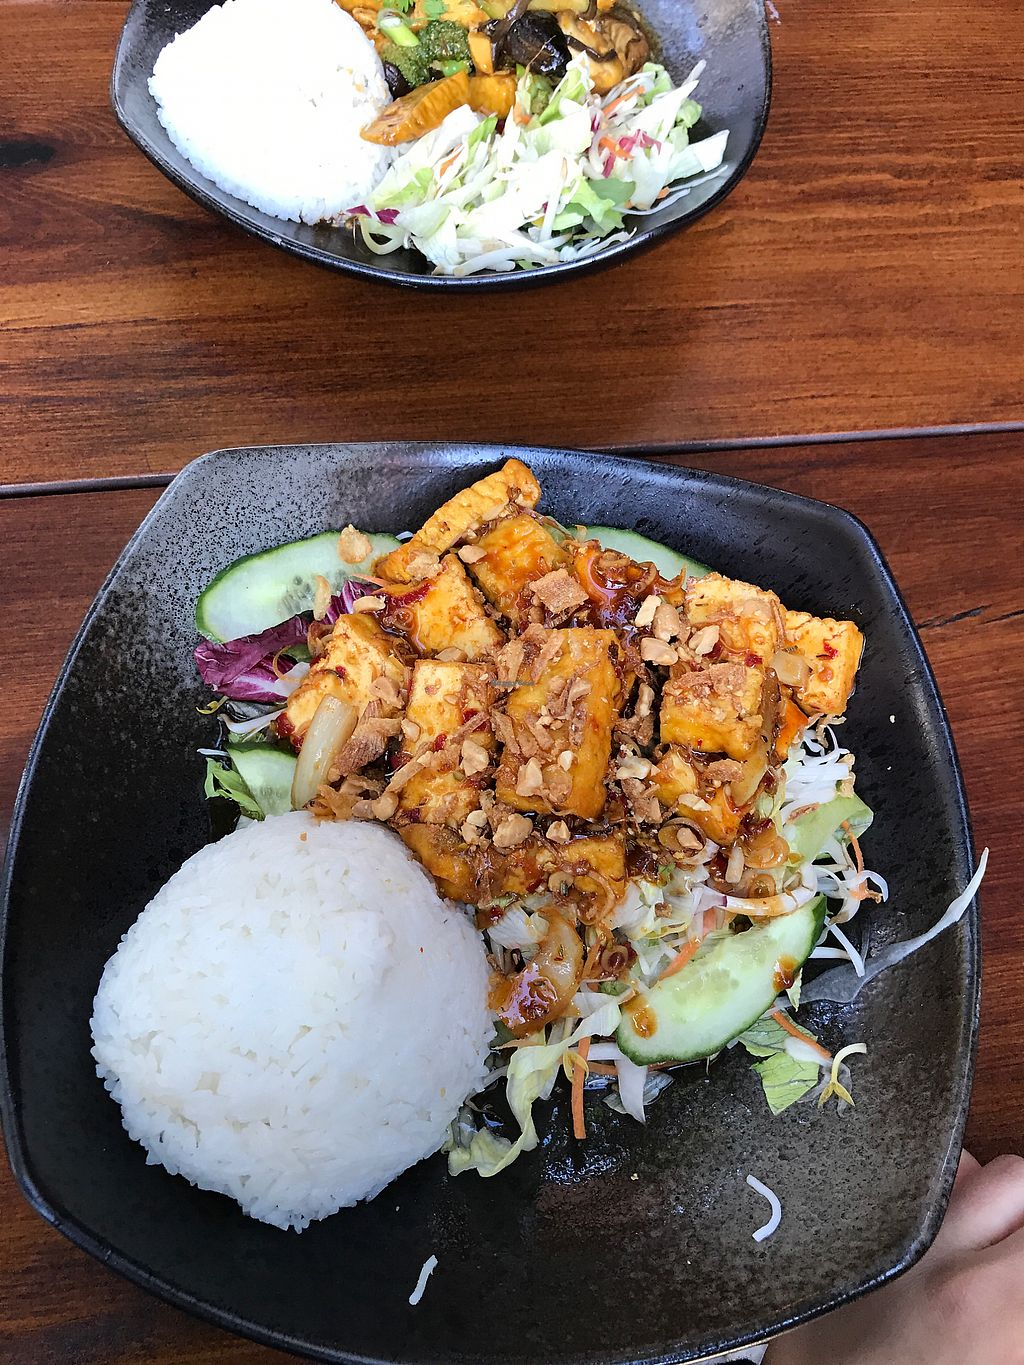 "Photo of Chay Umi  by <a href=""/members/profile/paz%26ash"">paz&ash</a> <br/>Spicy tofu with salad and rice ? <br/> August 15, 2017  - <a href='/contact/abuse/image/78089/292997'>Report</a>"